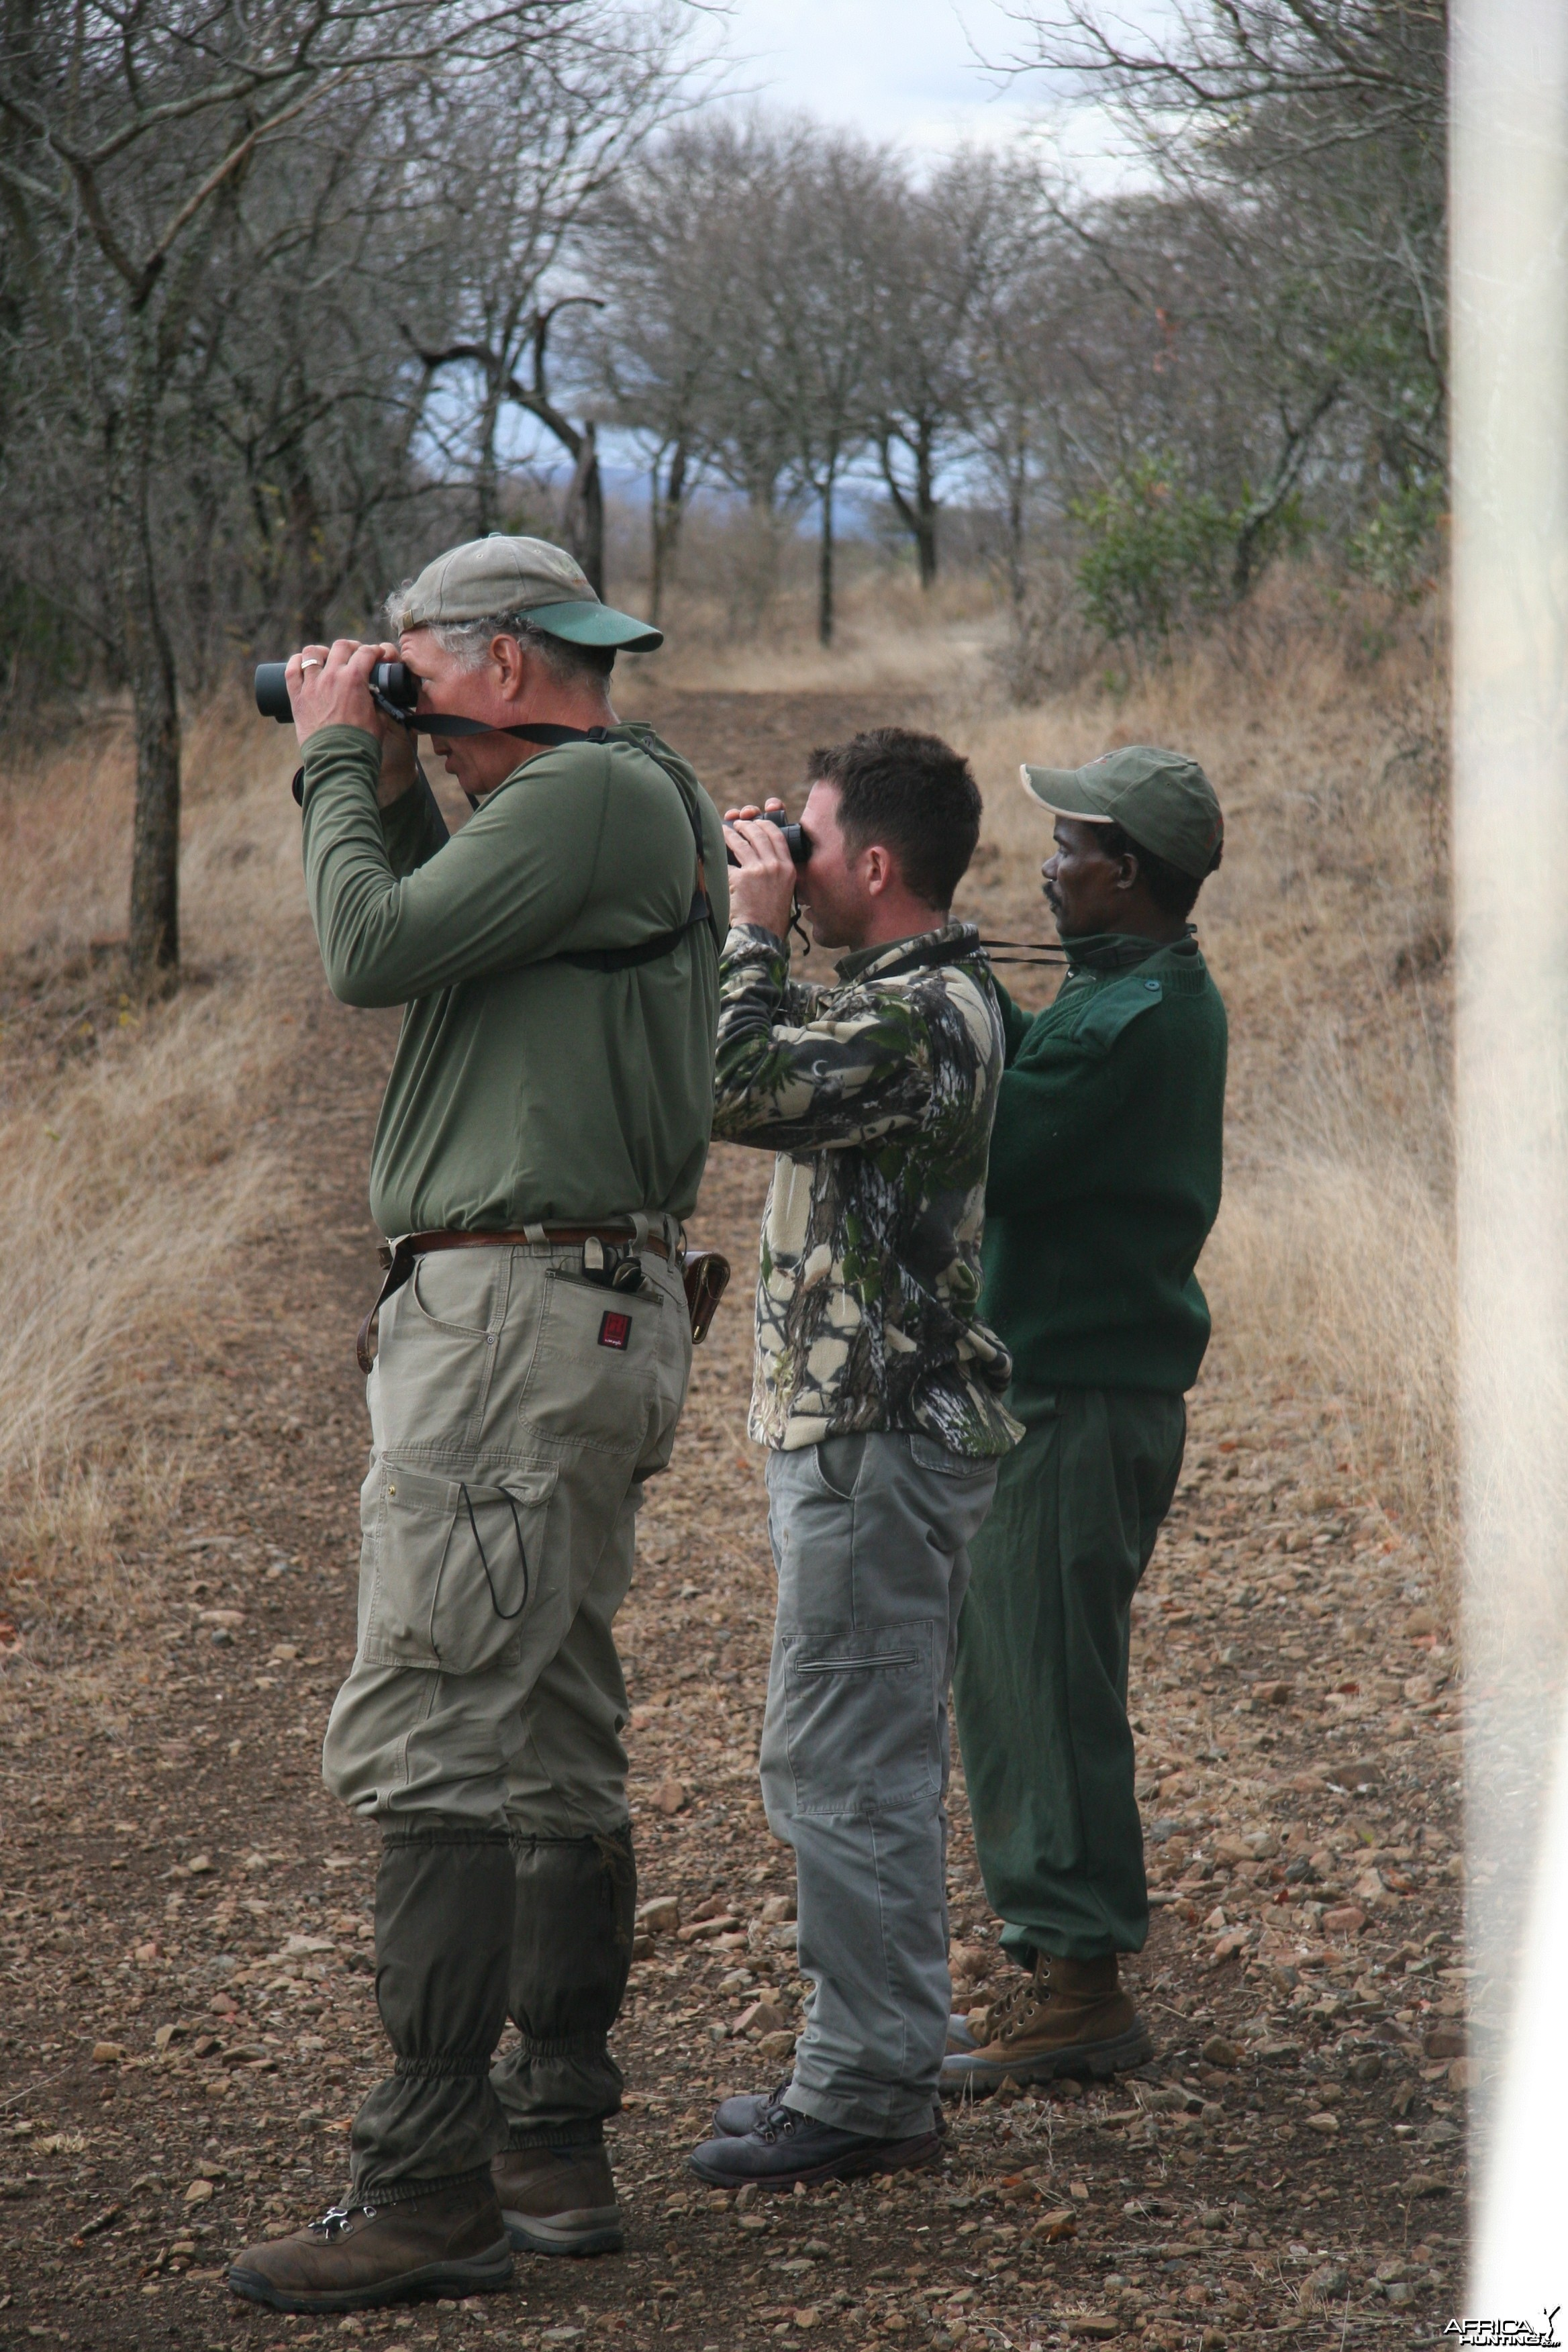 Glassing for Kudu - the team